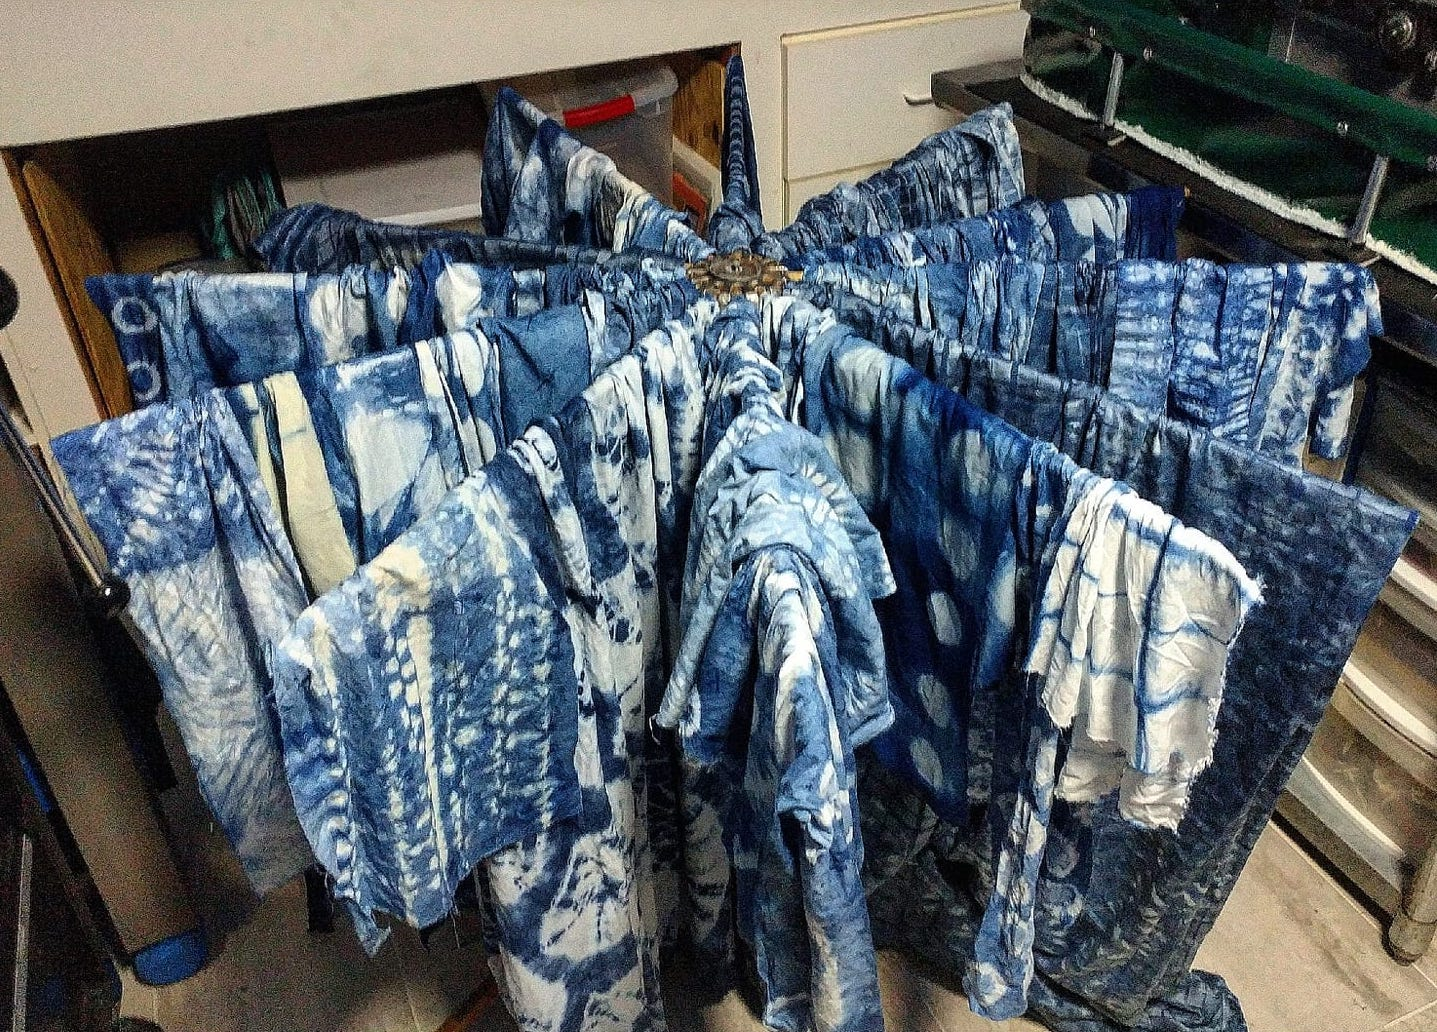 Over fifty pieces of shibori-dyed fabric drying.